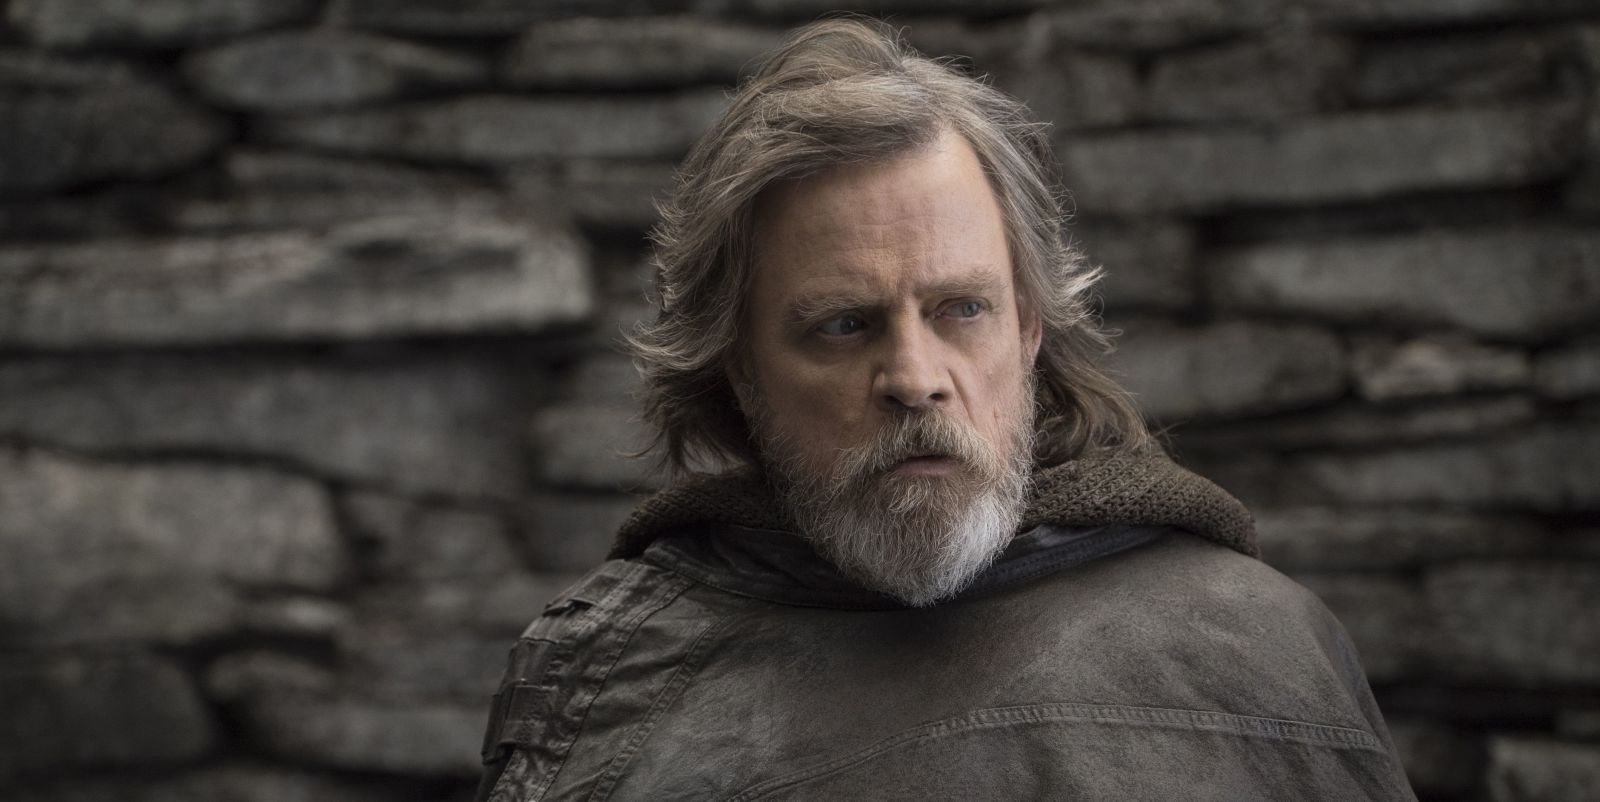 Star Wars' Mark Hamill teases fans over Episode 9's title